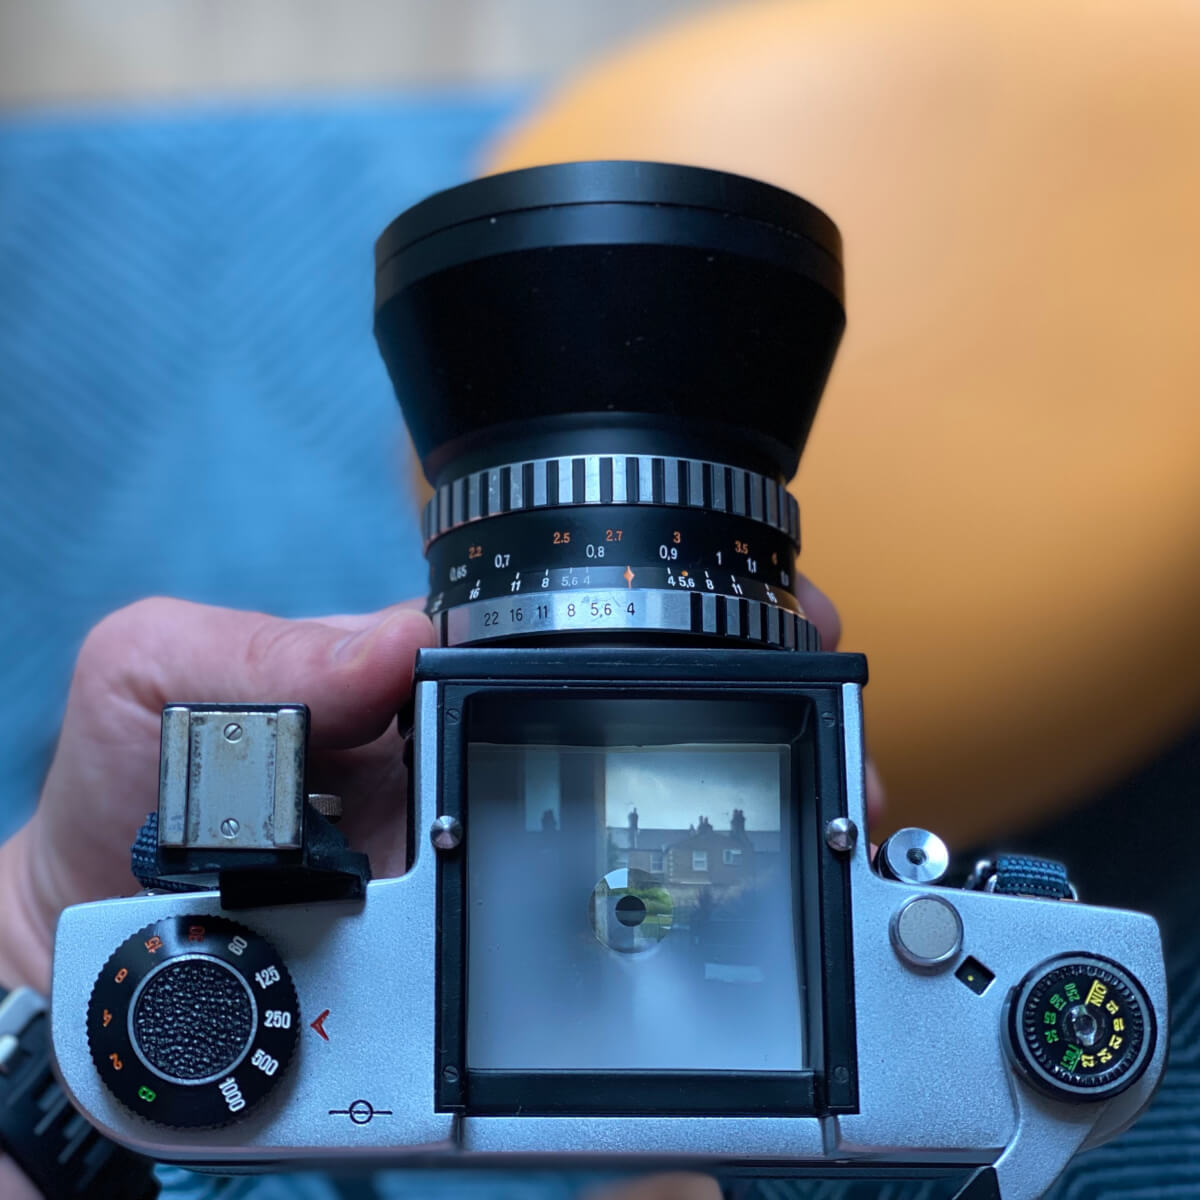 The focusing screen without hood or pentaprism attached